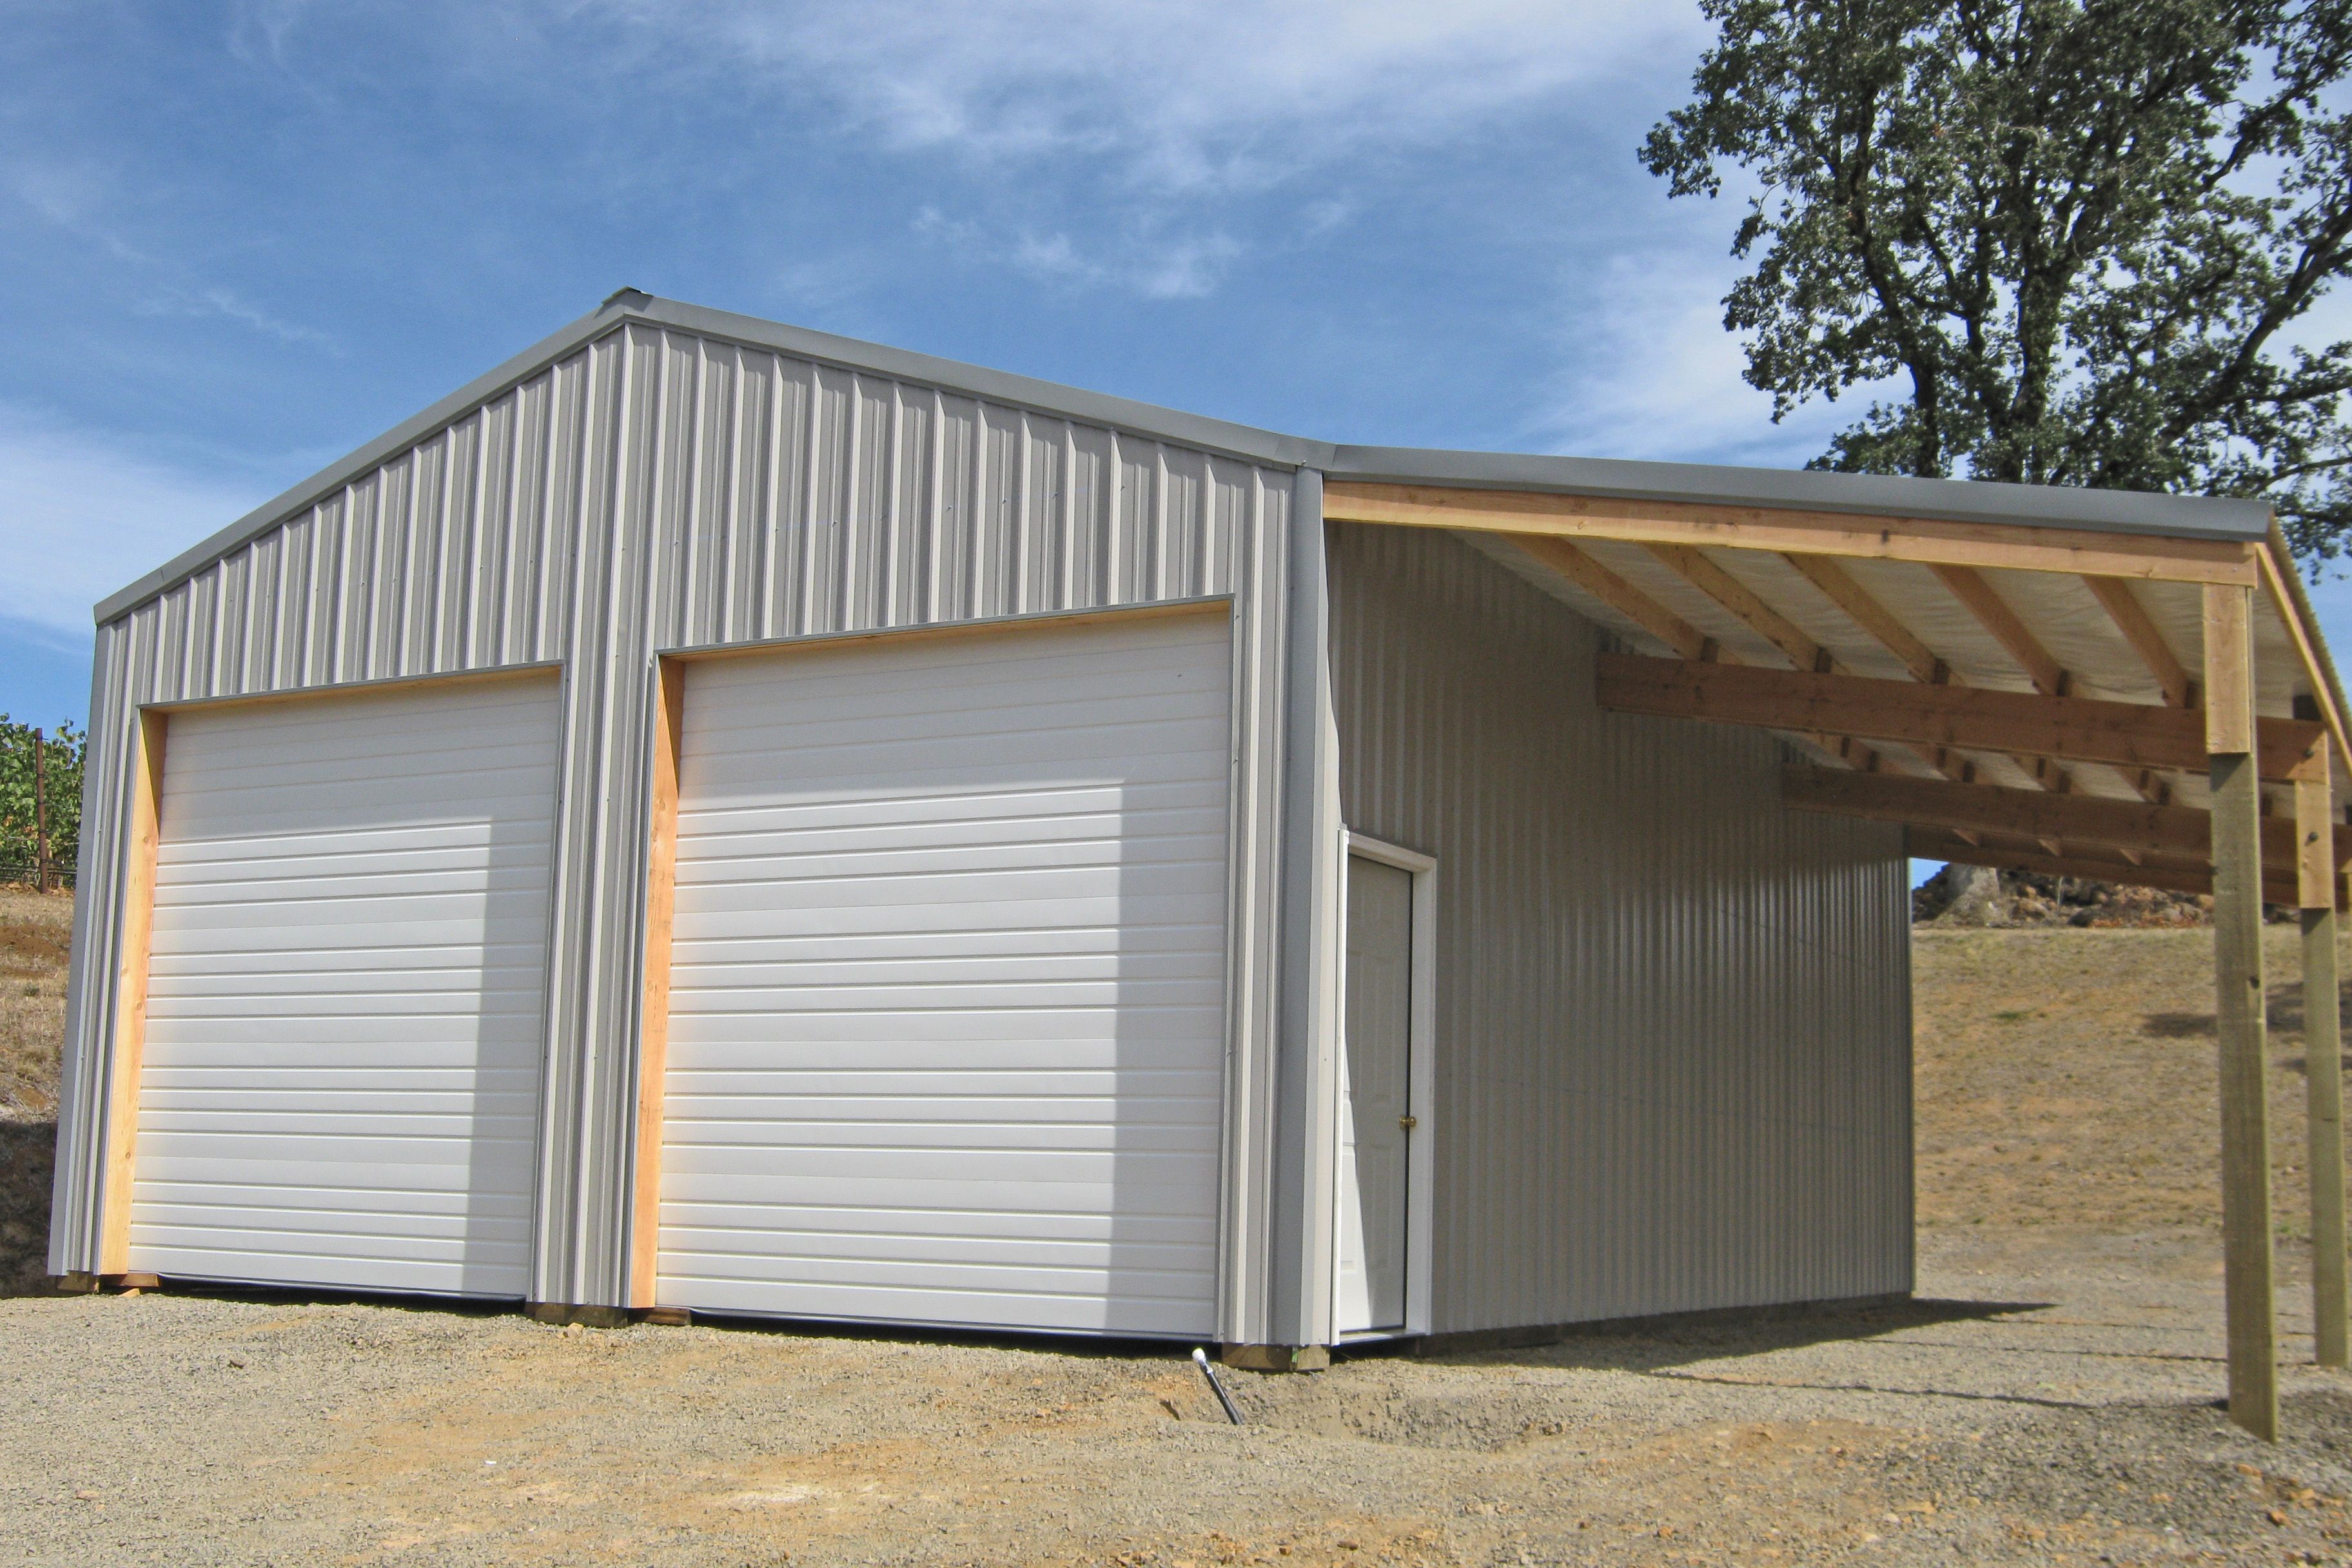 30 X 36 X 12 Storage Building For A Vineyard Www Econofabbuildings Com Metal Storage Buildings Metal Garage Buildings Metal Garages